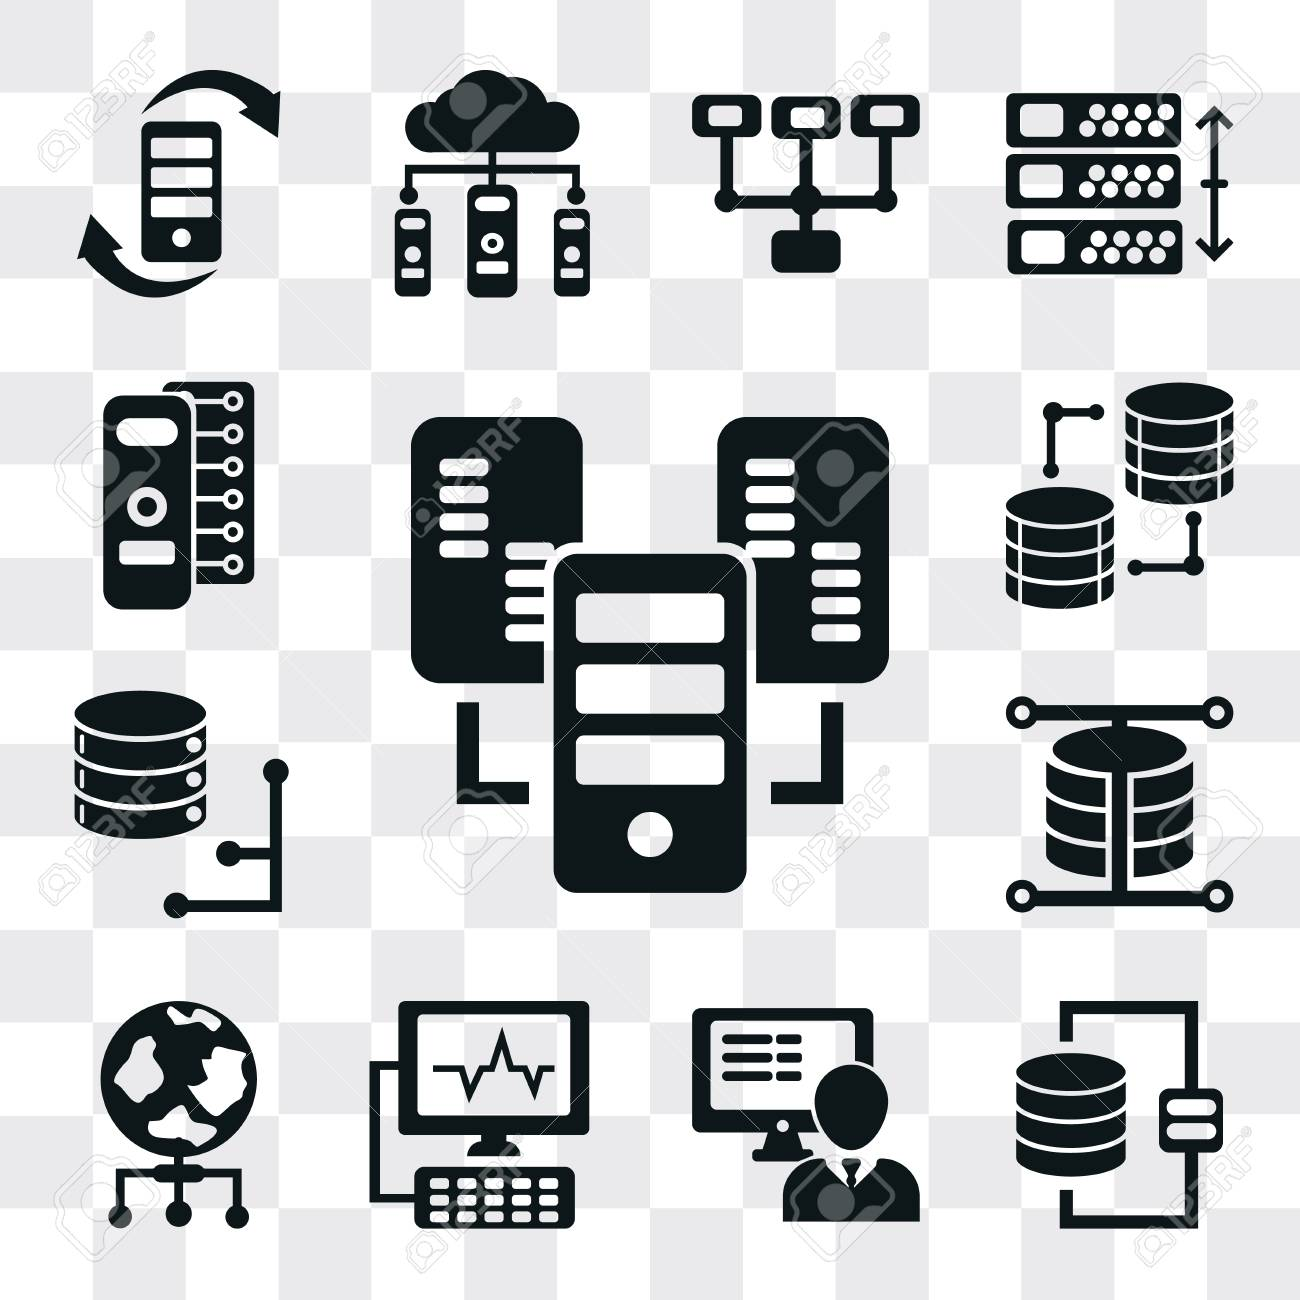 Set Of 13 simple editable icons such as Server, Database, Computer,